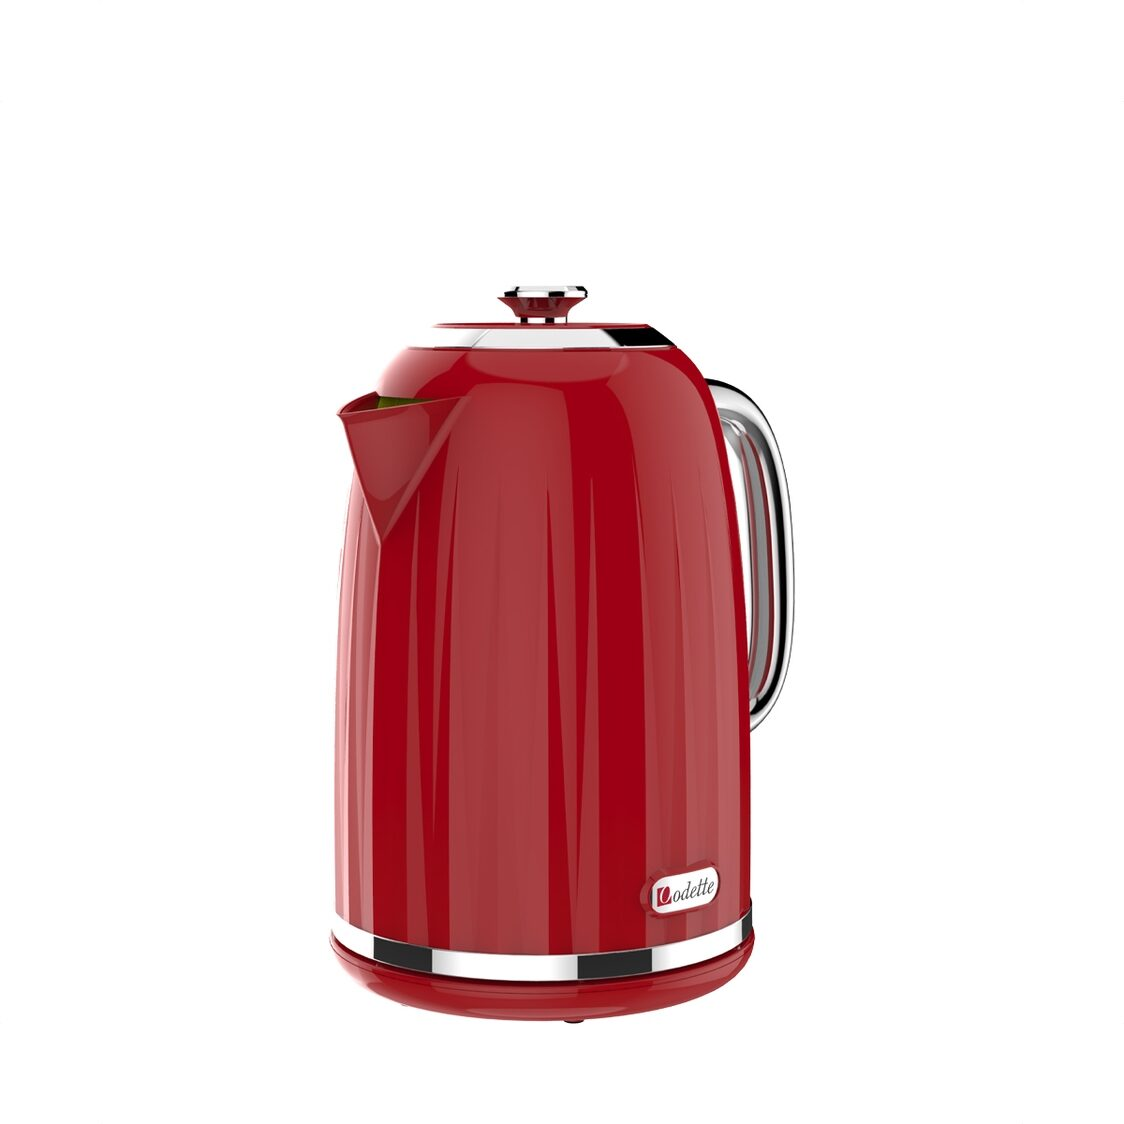 17L Retro Design Electric Kettle Red WK8512